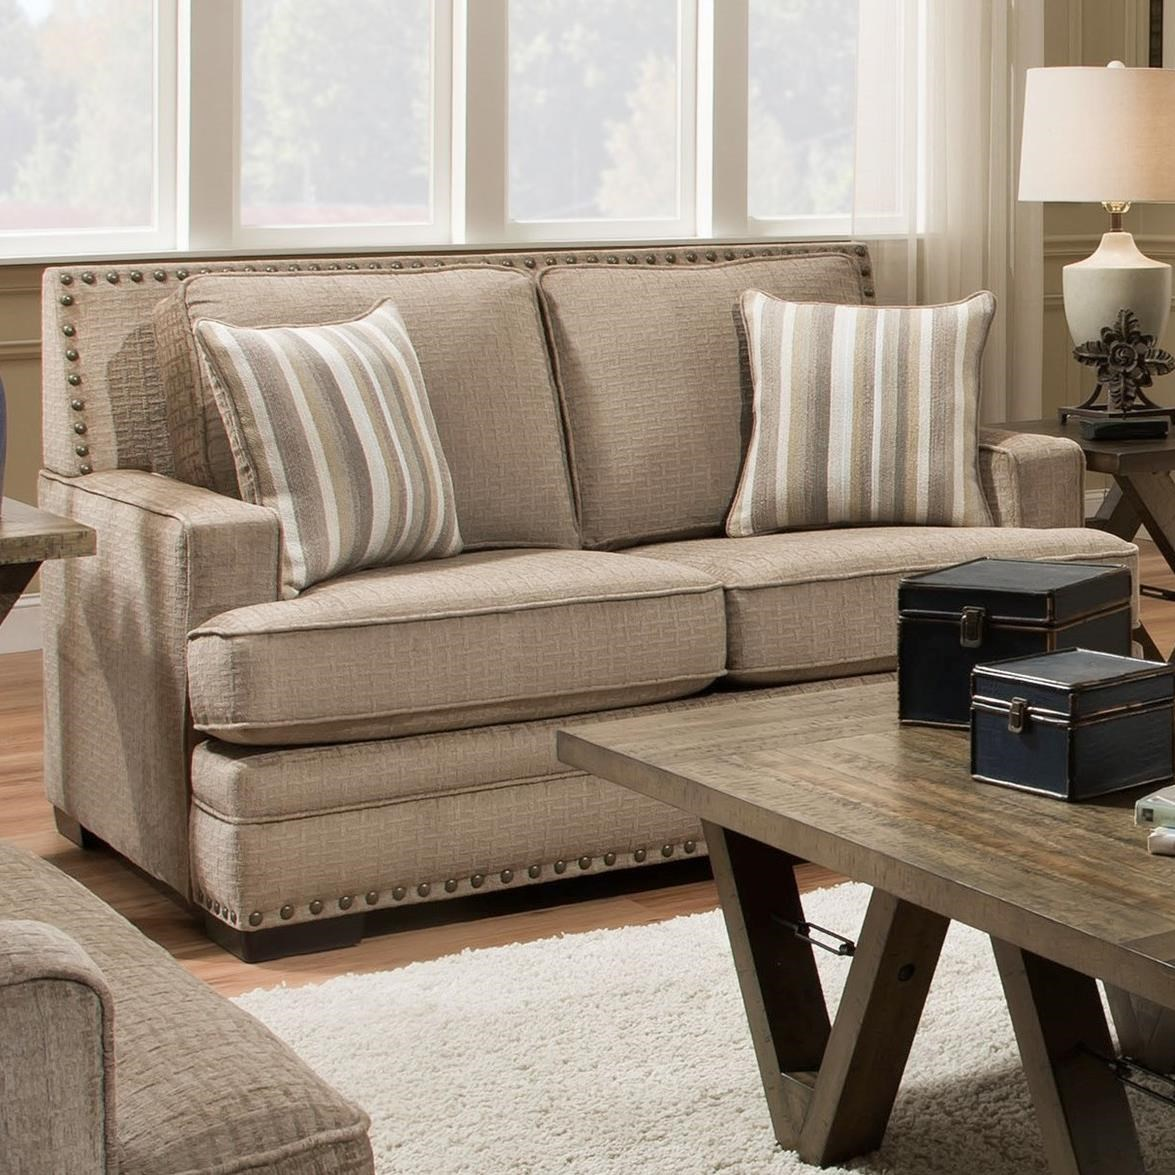 Albany 488 Loveseat - Item Number: 0488-10-GENS-22528